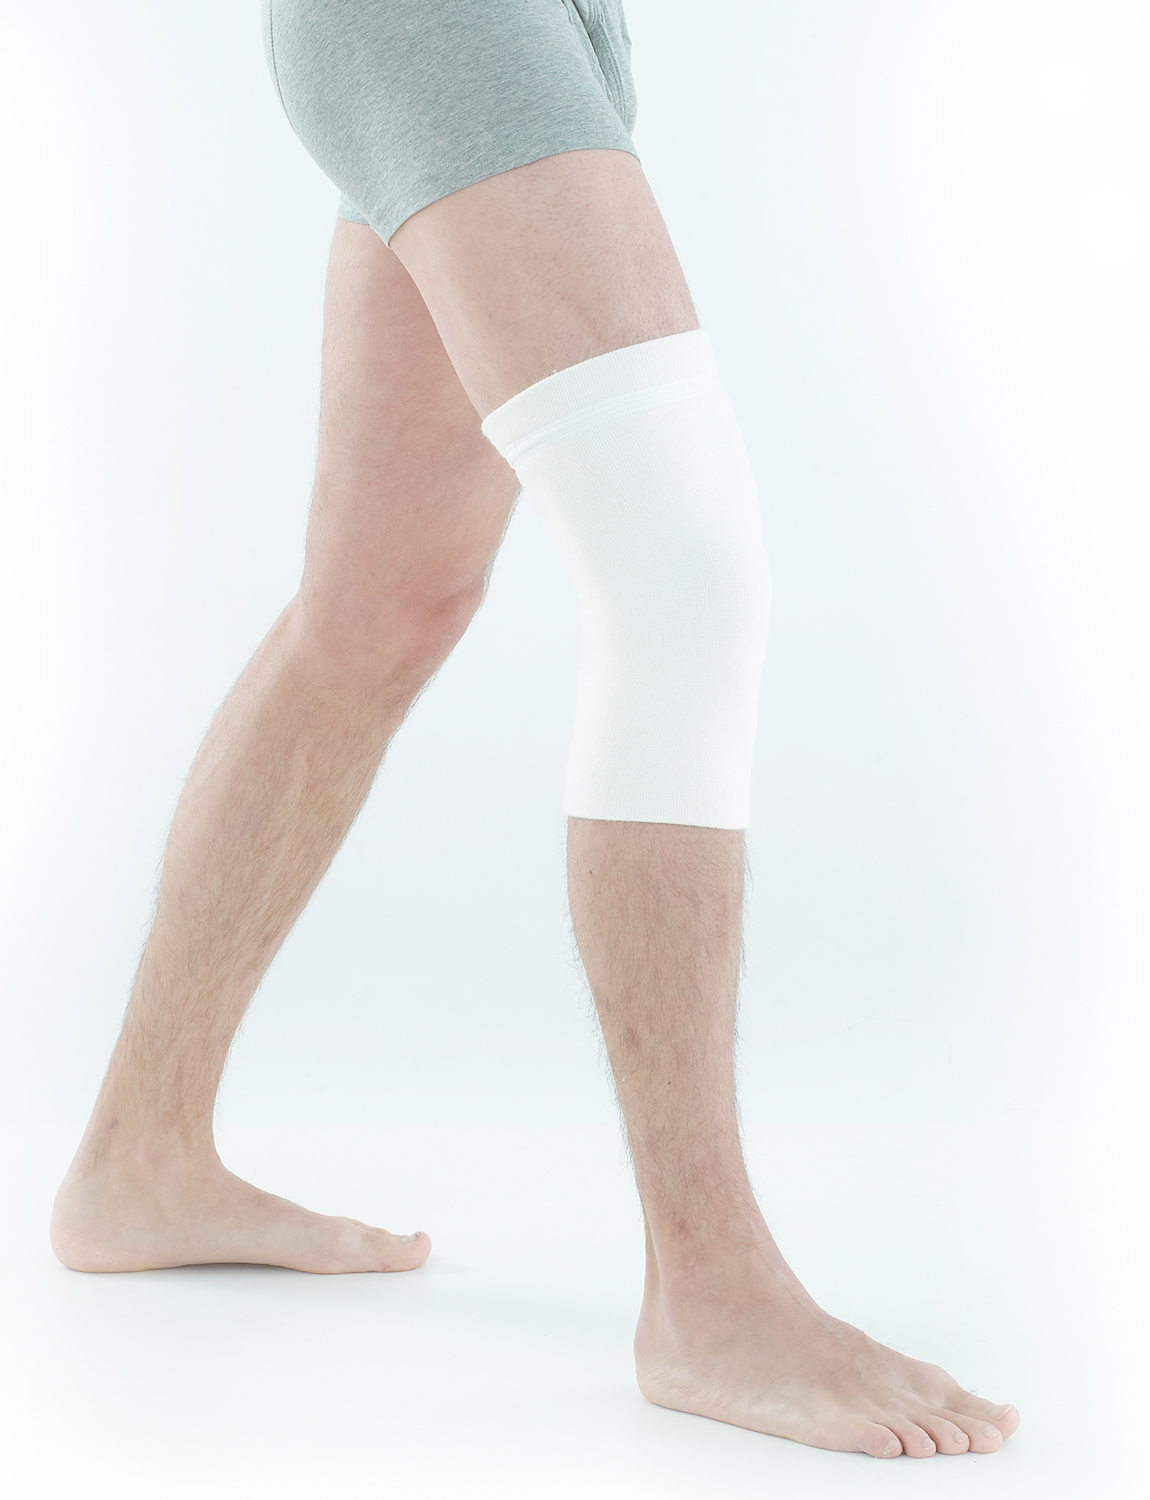 805 - ANGORA & WOOL KNEE WARMER & SUPPORT  The Neo G Angora & Wool Knee Warmer & Support is designed with naturally insulating material which helps to retain heat in the knee region to keep muscles and joints warm. It helps gently support the knee complex to help with injured, weak or arthritic knees.